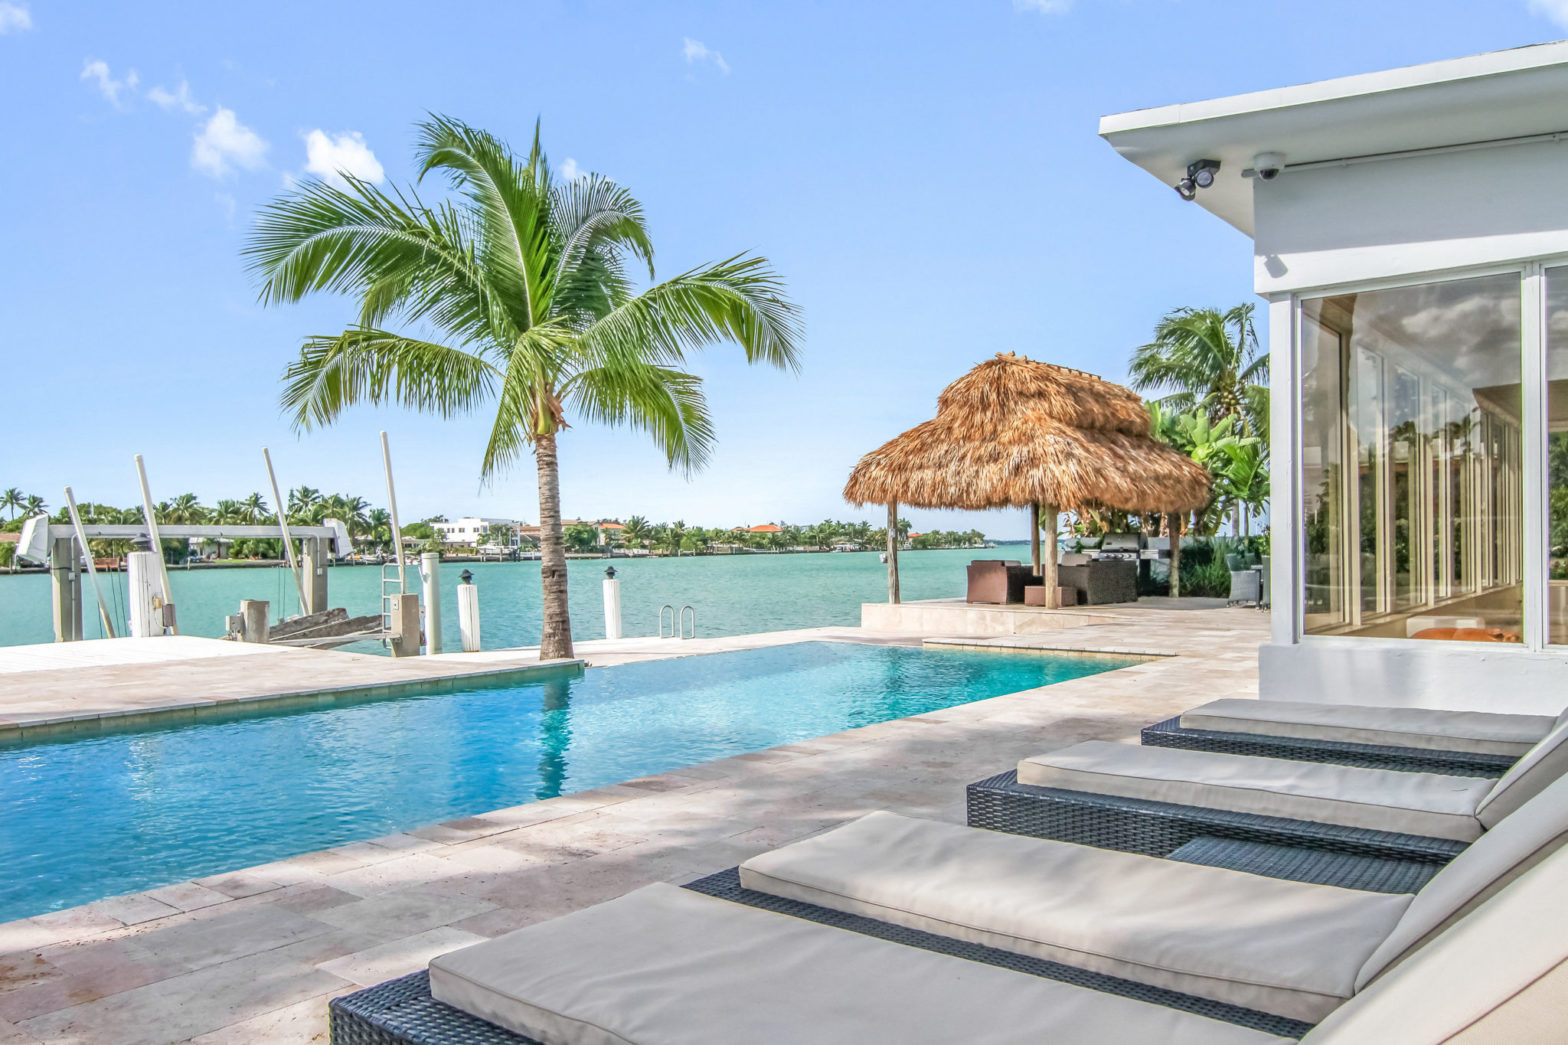 art miami invest real estate luxury real estate purchase sale rental villa house residence condo